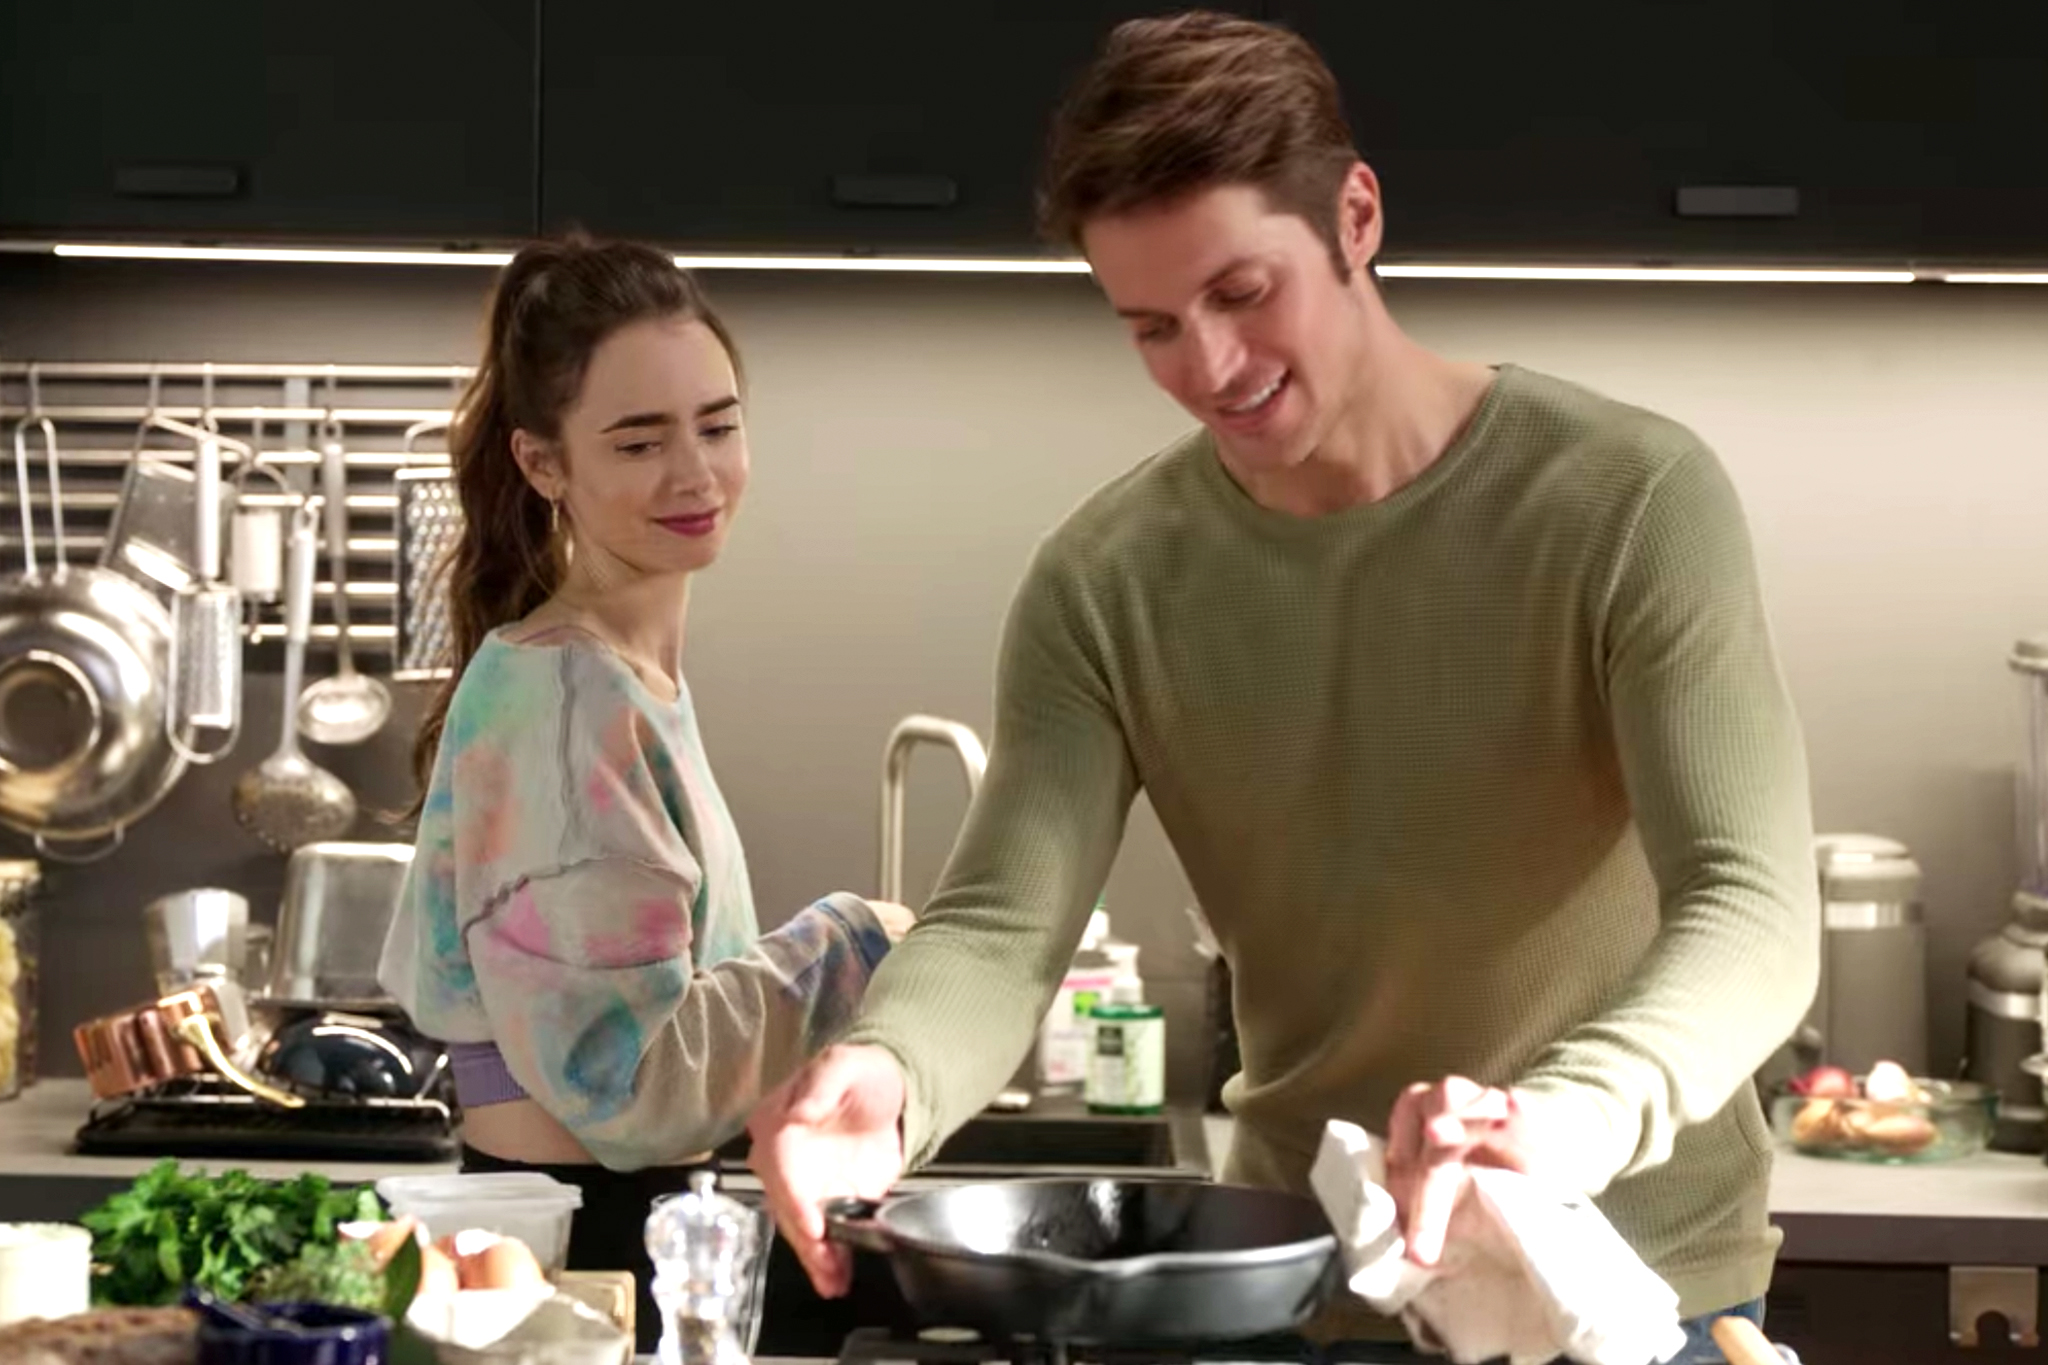 Netflix's 'Emily in Paris' perpetuates harmful stereotypes about cast iron skillets